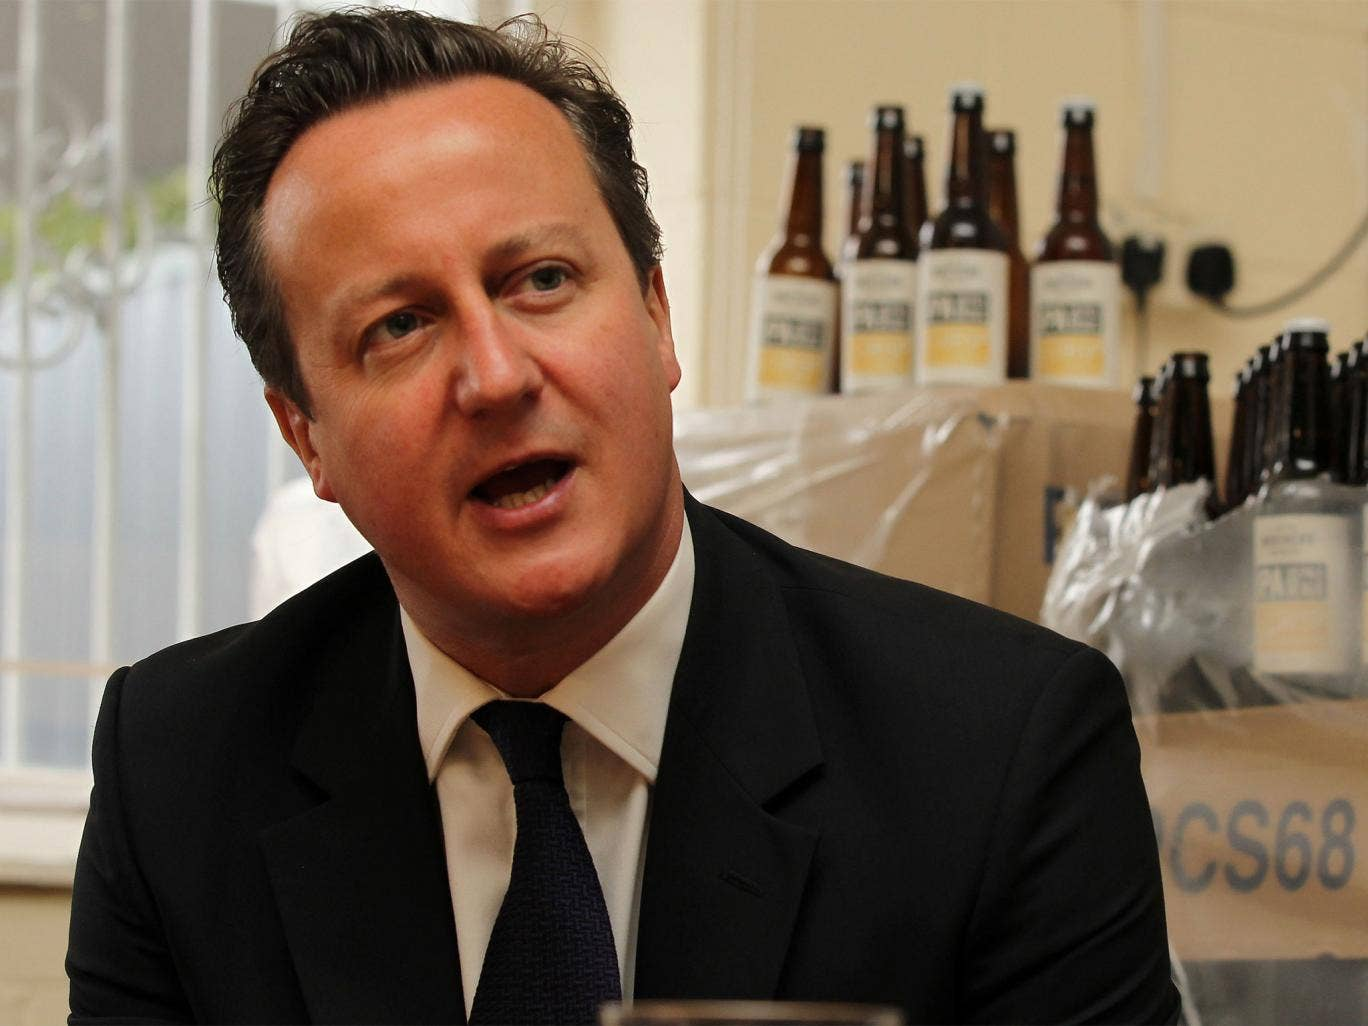 Prime Minister David Cameron during his visit to a small business start up, Seven Bro7hers brewery in Salford, on Wednesday